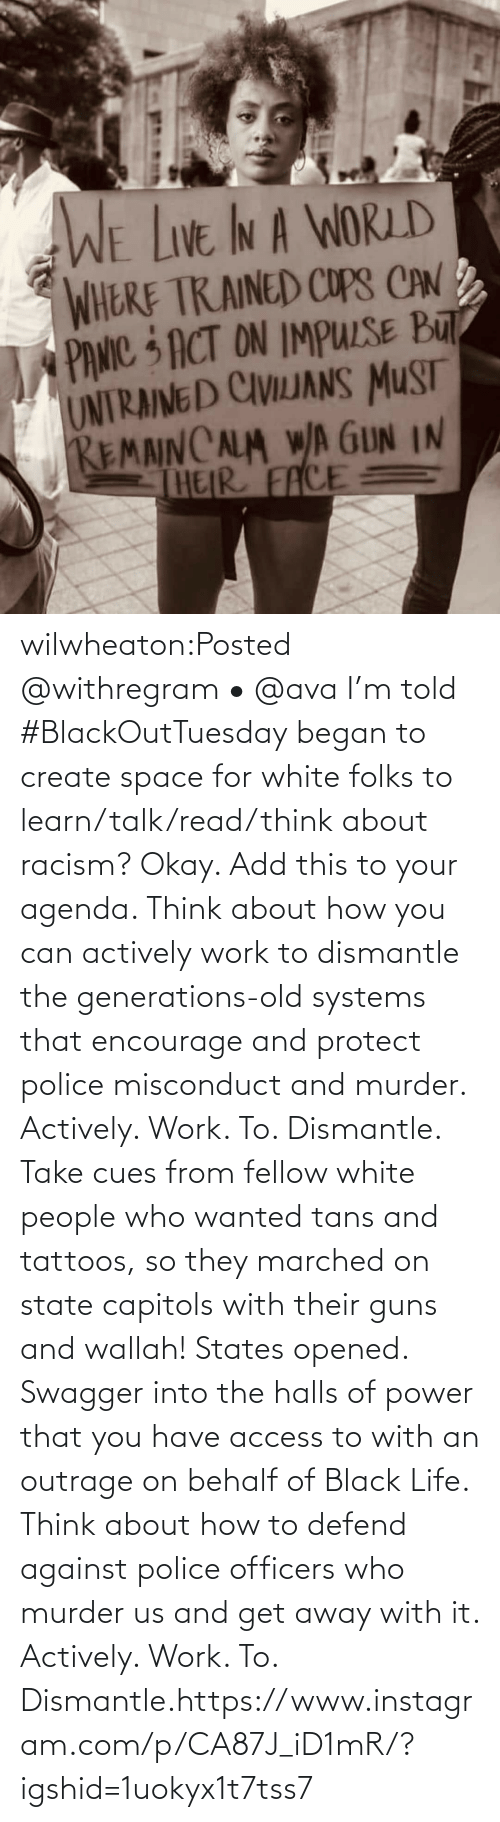 Work: wilwheaton:Posted @withregram • @ava I'm told #BlackOutTuesday began to create space for white folks to learn/talk/read/think about racism? Okay. Add this to your agenda. Think about how you can actively work to dismantle the generations-old systems that encourage and protect police misconduct and murder. Actively. Work. To. Dismantle. Take cues from fellow white people who wanted tans and tattoos, so they marched on state capitols with their guns and wallah! States opened. Swagger into the halls of power that you have access to with an outrage on behalf of Black Life. Think about how to defend against police officers who murder us and get away with it. Actively. Work. To. Dismantle.https://www.instagram.com/p/CA87J_iD1mR/?igshid=1uokyx1t7tss7